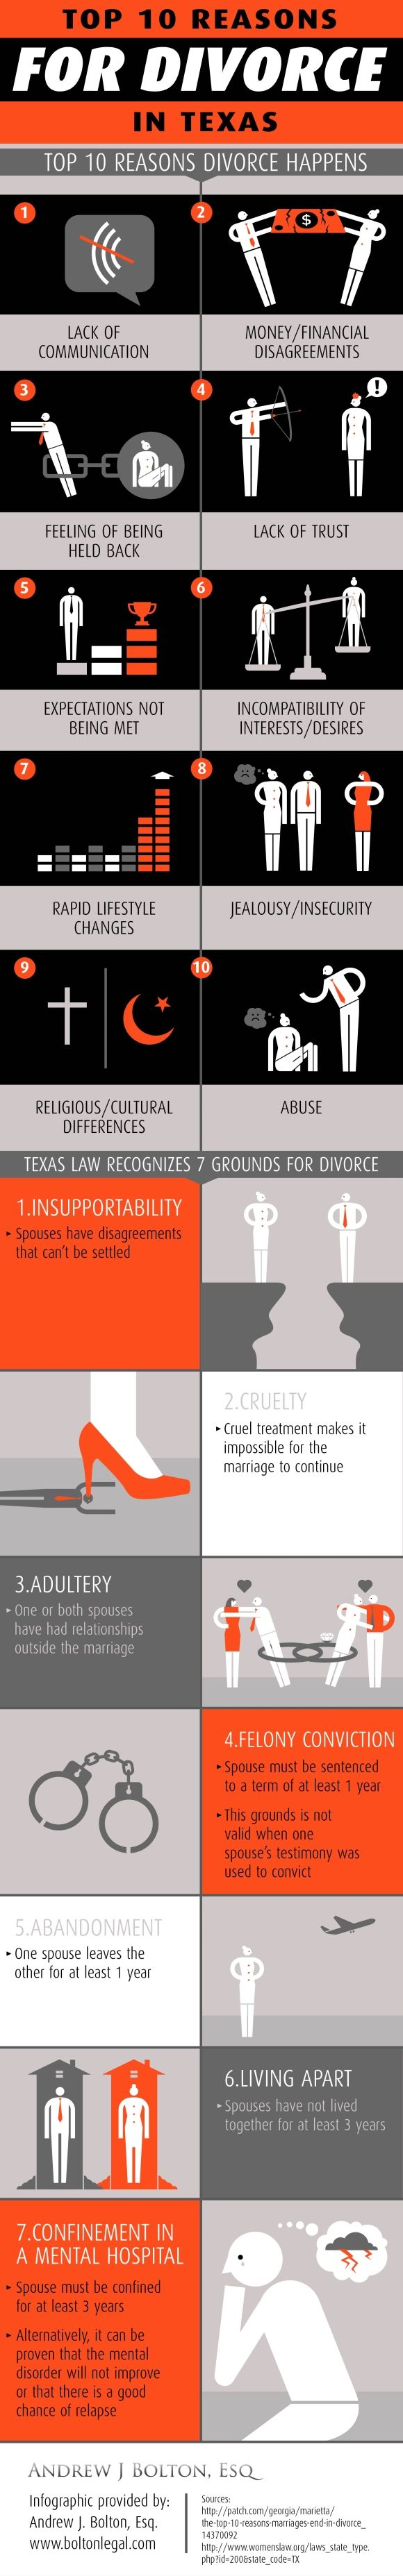 Did you know that Texas law recognizes 7 grounds for divorce? Take a look at this infographic from a divorce attorney in The Woodlands to see what these grounds are and why they are recognized as reasons for divorce in Texas.